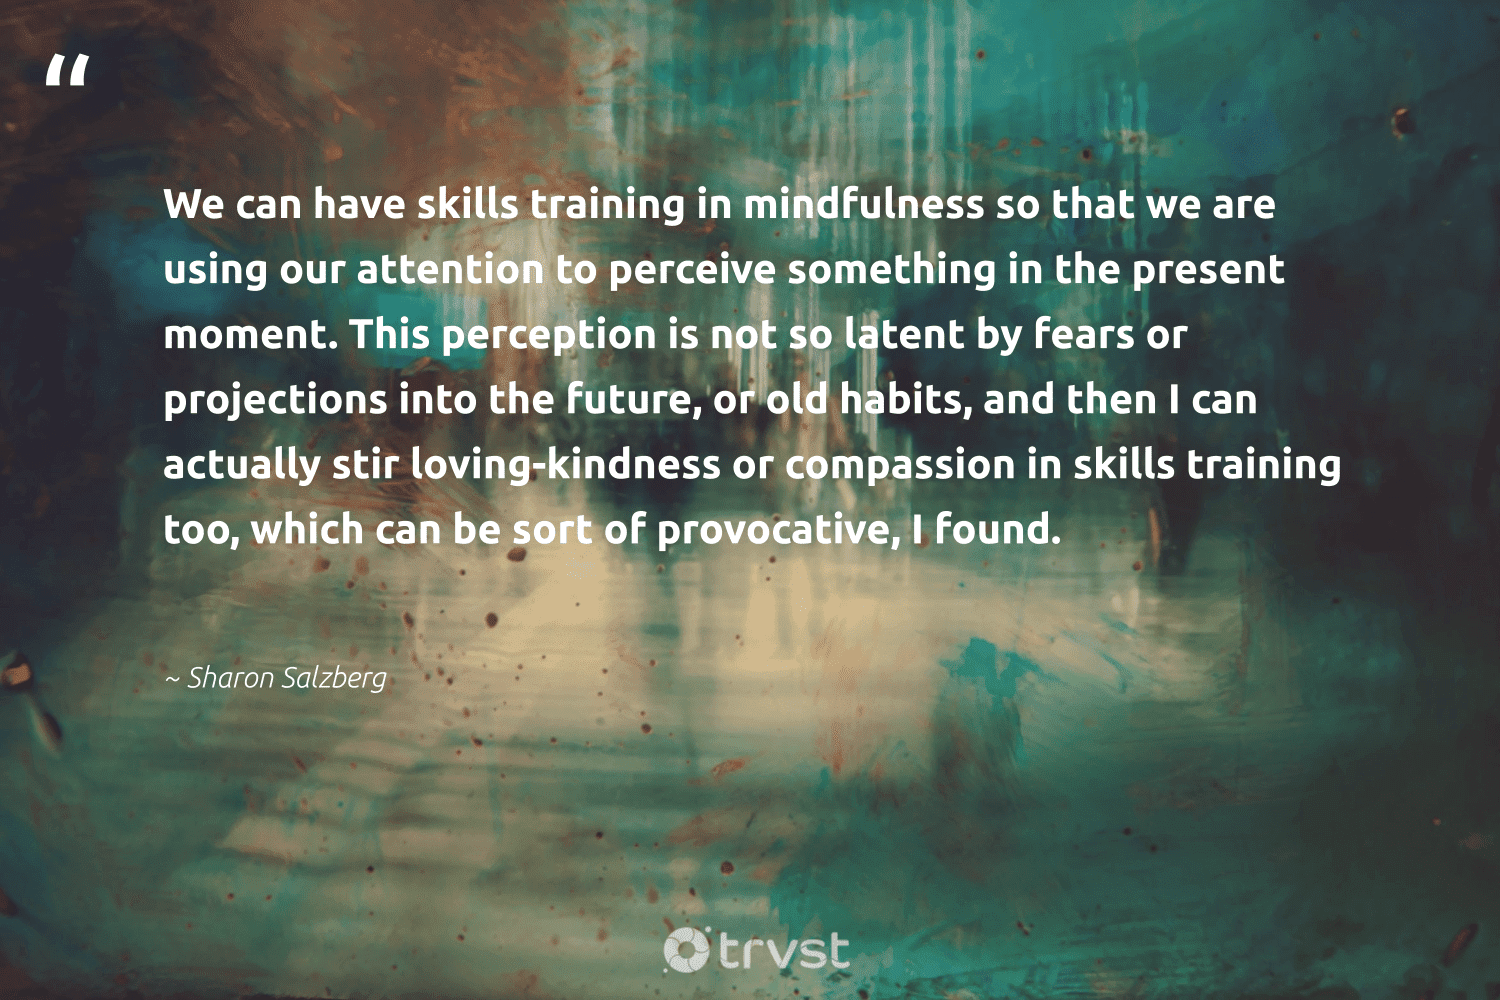 """""""We can have skills training in mindfulness so that we are using our attention to perceive something in the present moment. This perception is not so latent by fears or projections into the future, or old habits, and then I can actually stir loving-kindness or compassion in skills training too, which can be sort of provocative, I found.""""  - Sharon Salzberg #trvst #quotes #mindfulness #kindness #entrepreneurmindset #happiness #nevergiveup #changetheworld #goals #mindset #health #gogreen"""